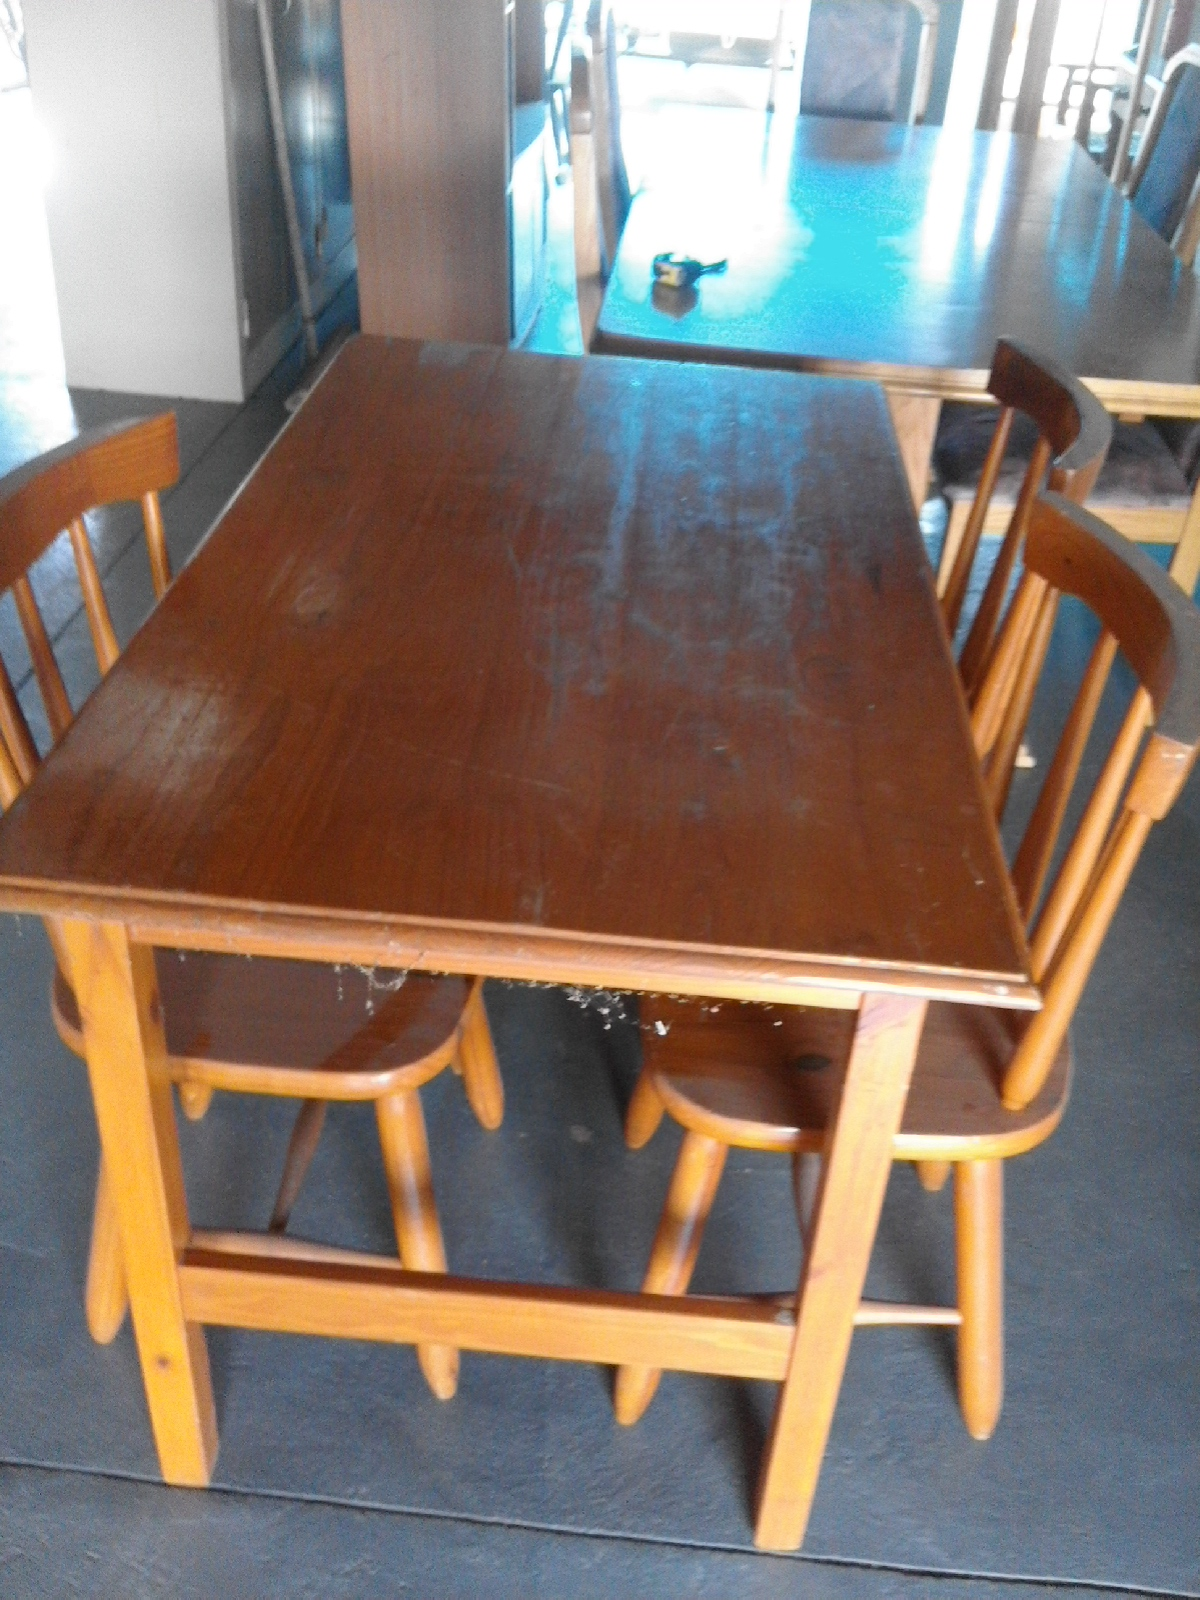 4 chairs and  oak varnished table